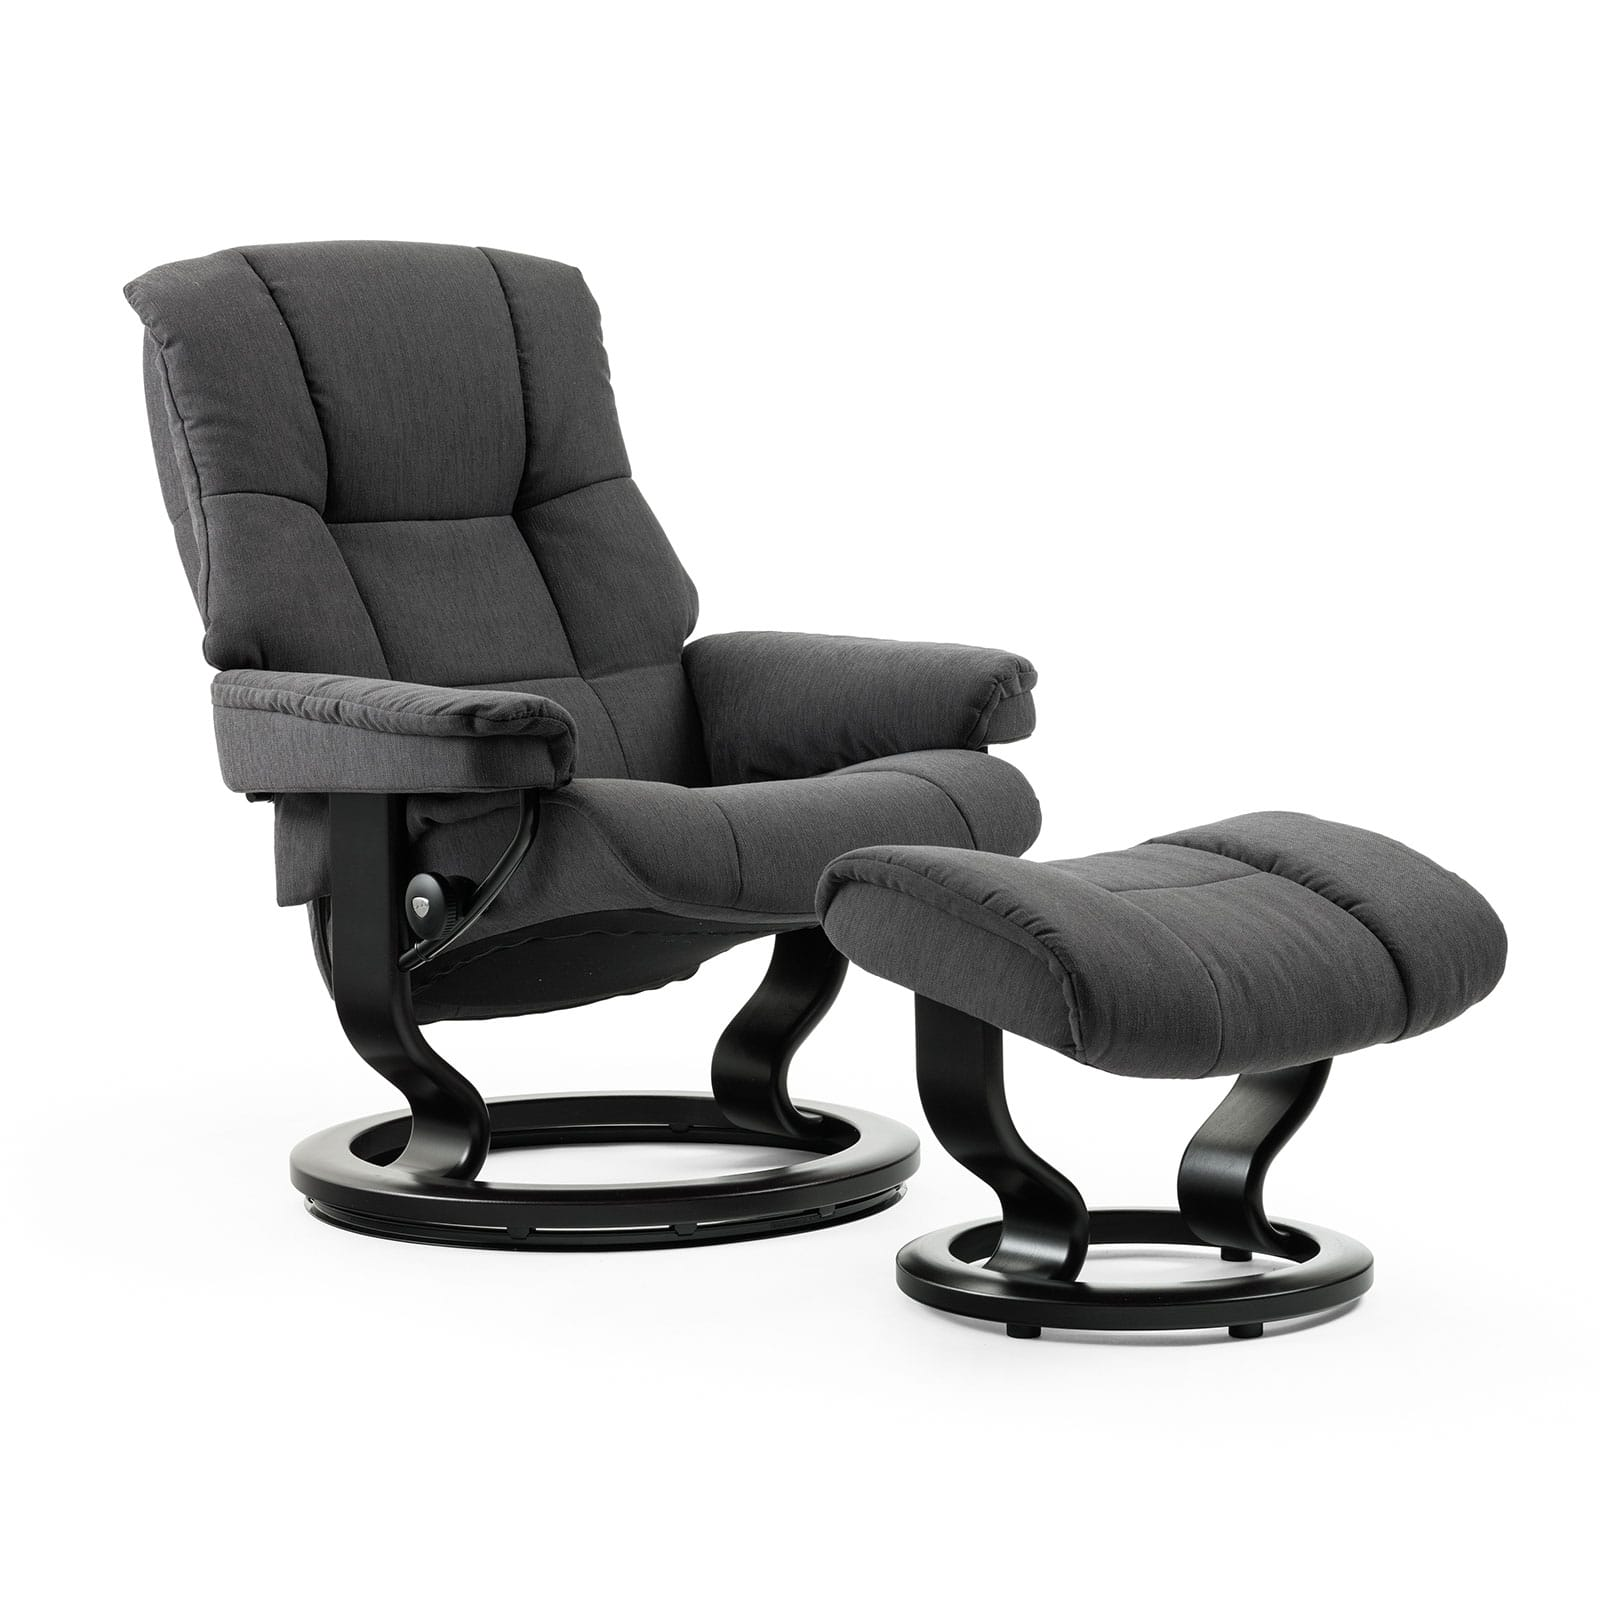 stressless mayfair stoff charcoal classic schwarz mit hocker. Black Bedroom Furniture Sets. Home Design Ideas